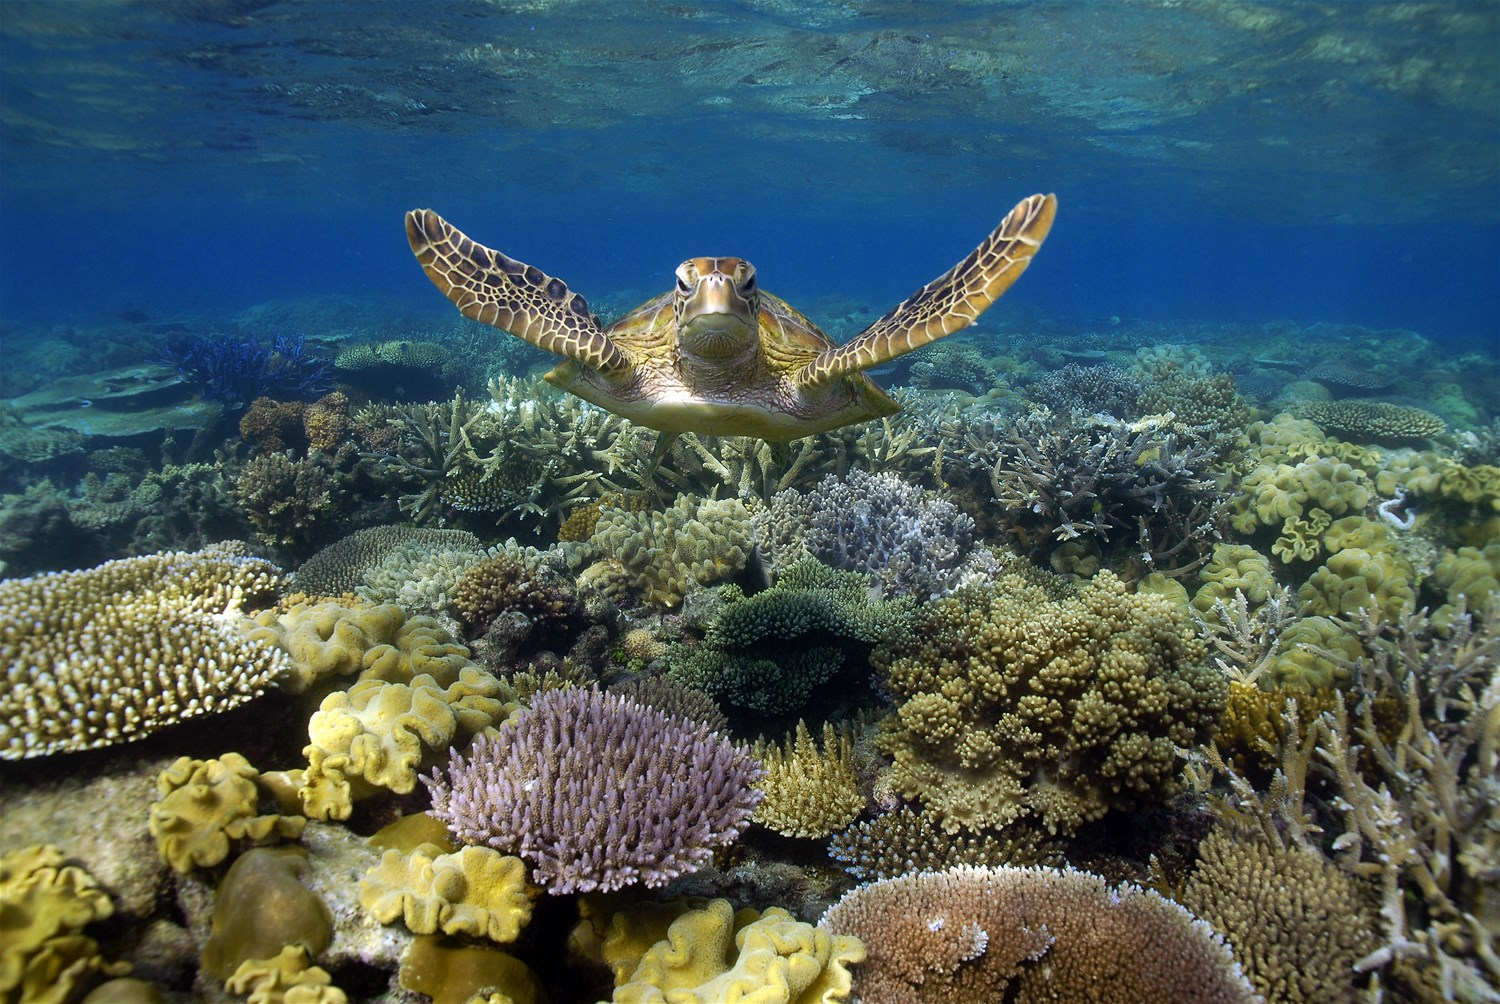 Southern Islands of the Great Barrier Reef